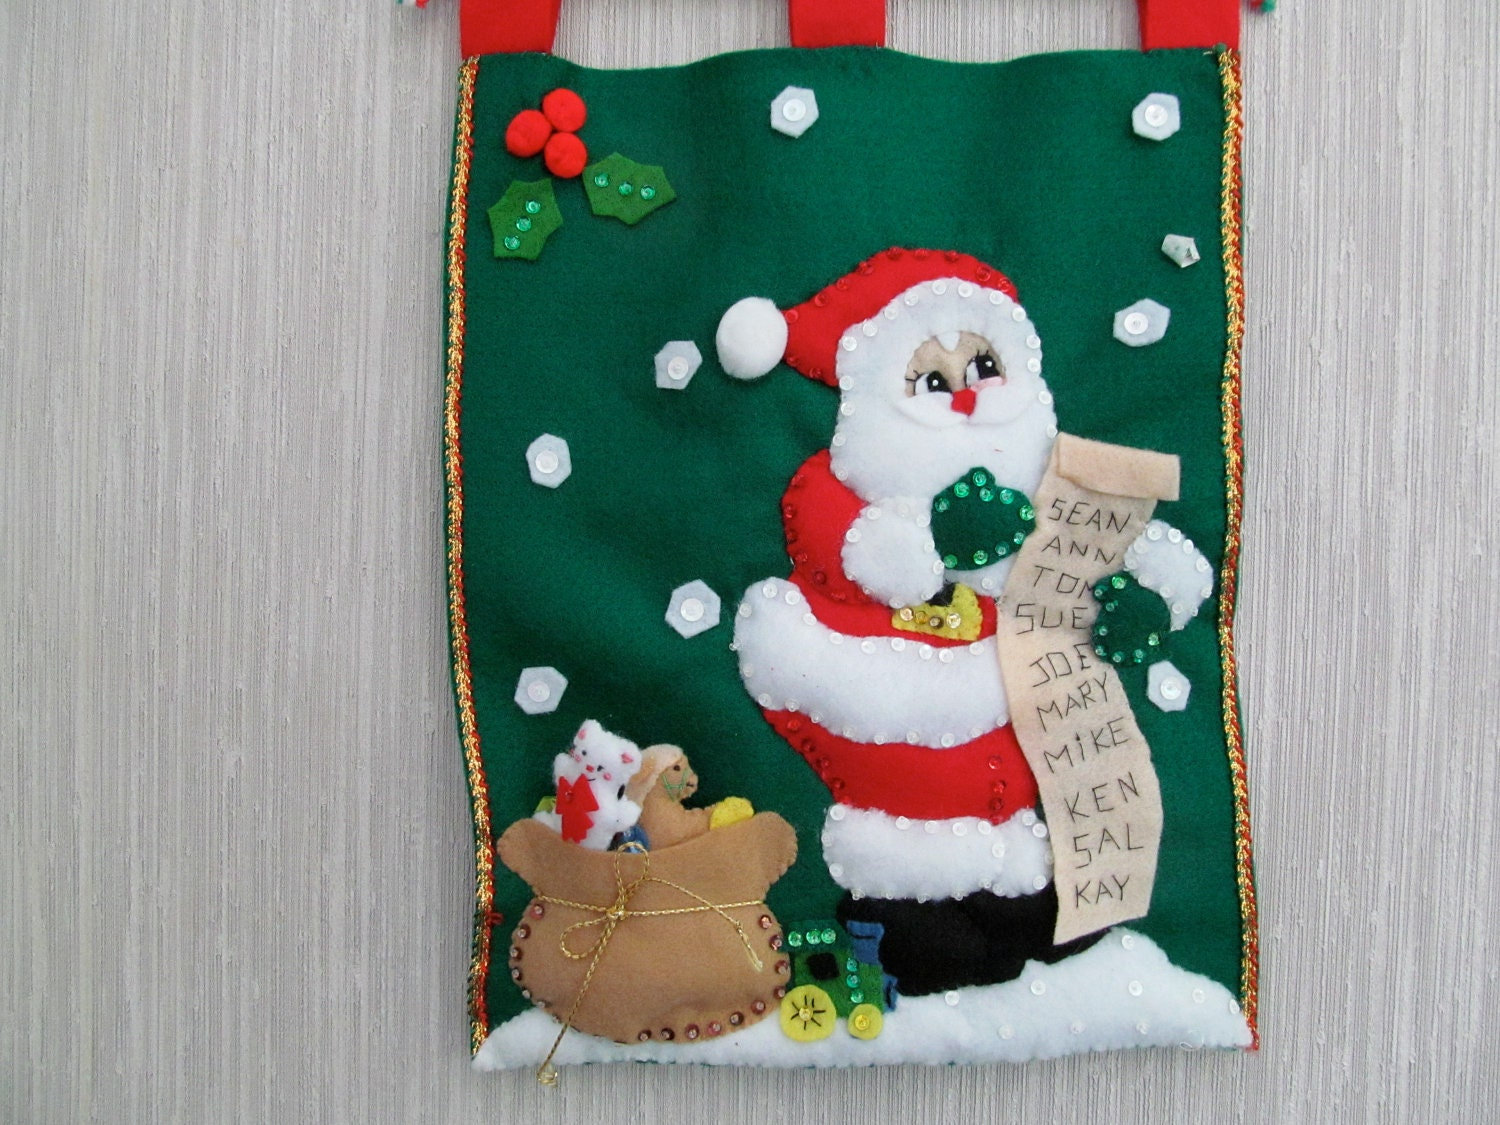 Santa's Toy List Felt Wall Hanging Decoration Completed Handmade from Bucilla Kit